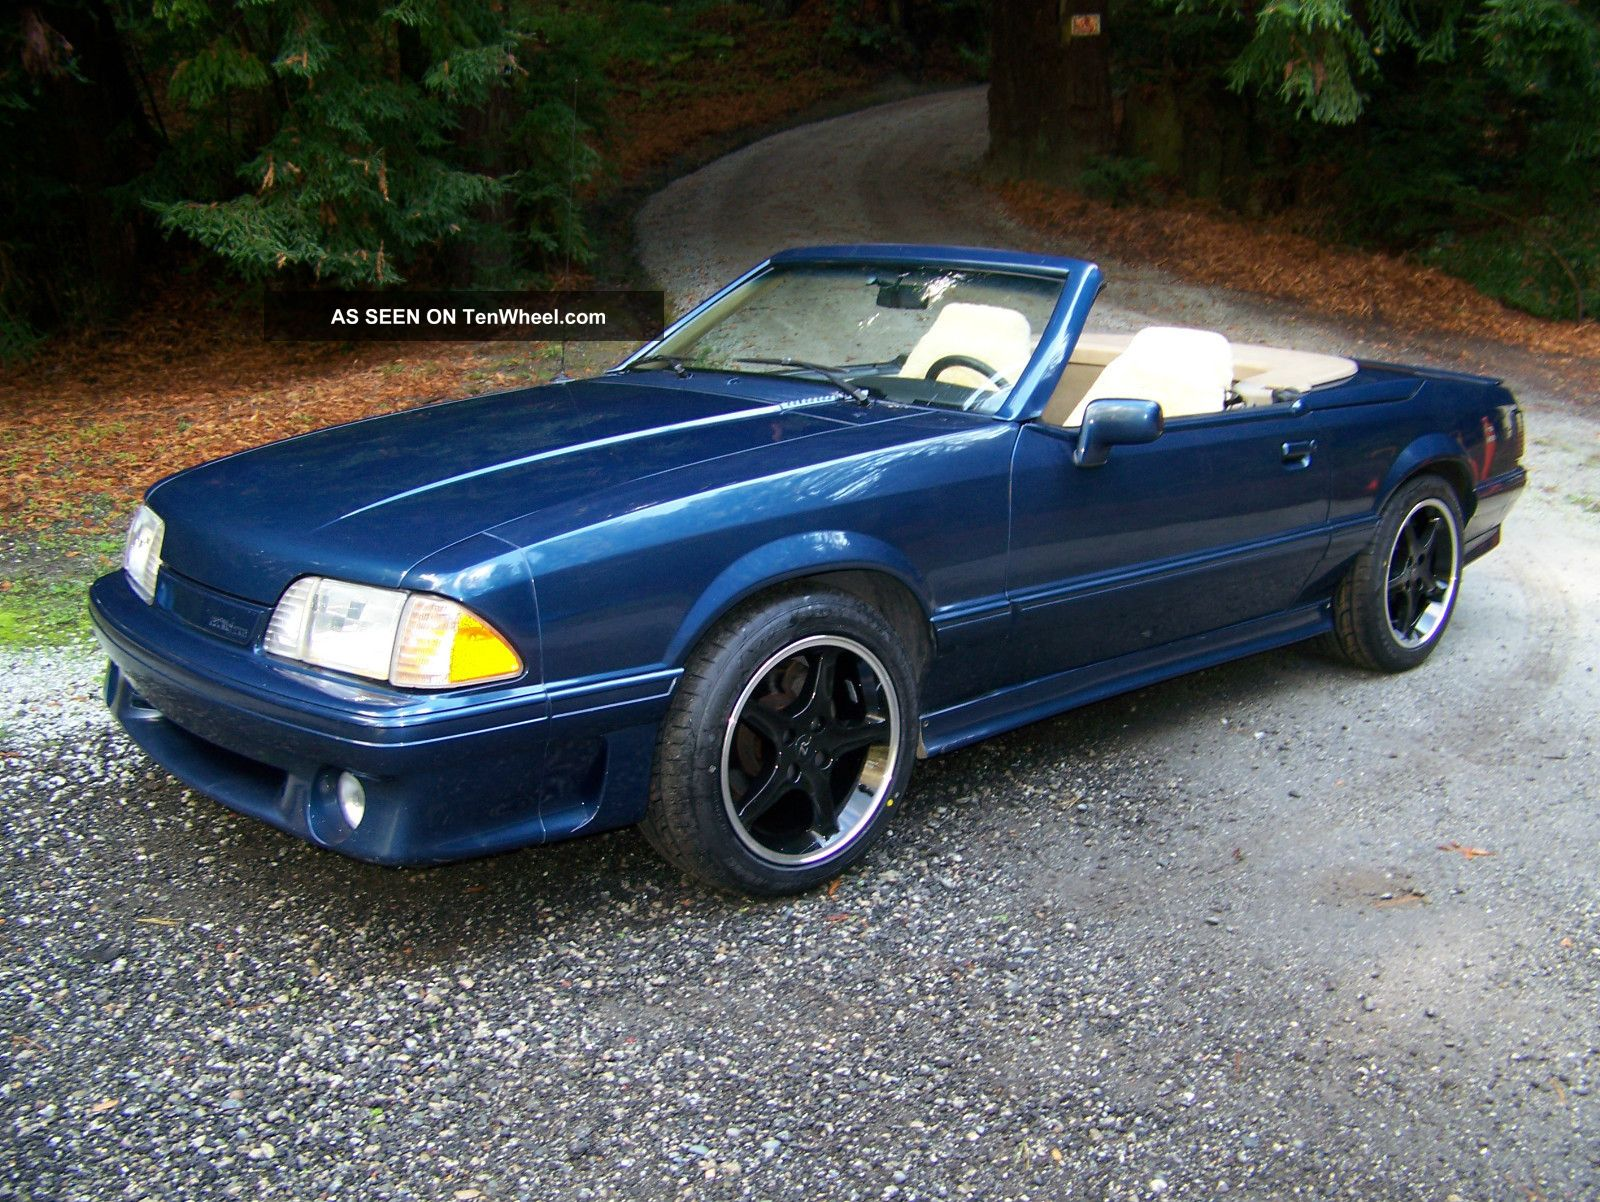 Asc Mclaren Mustang Coupe Convertible Lgw on 1988 Chevy Truck 350 Engine